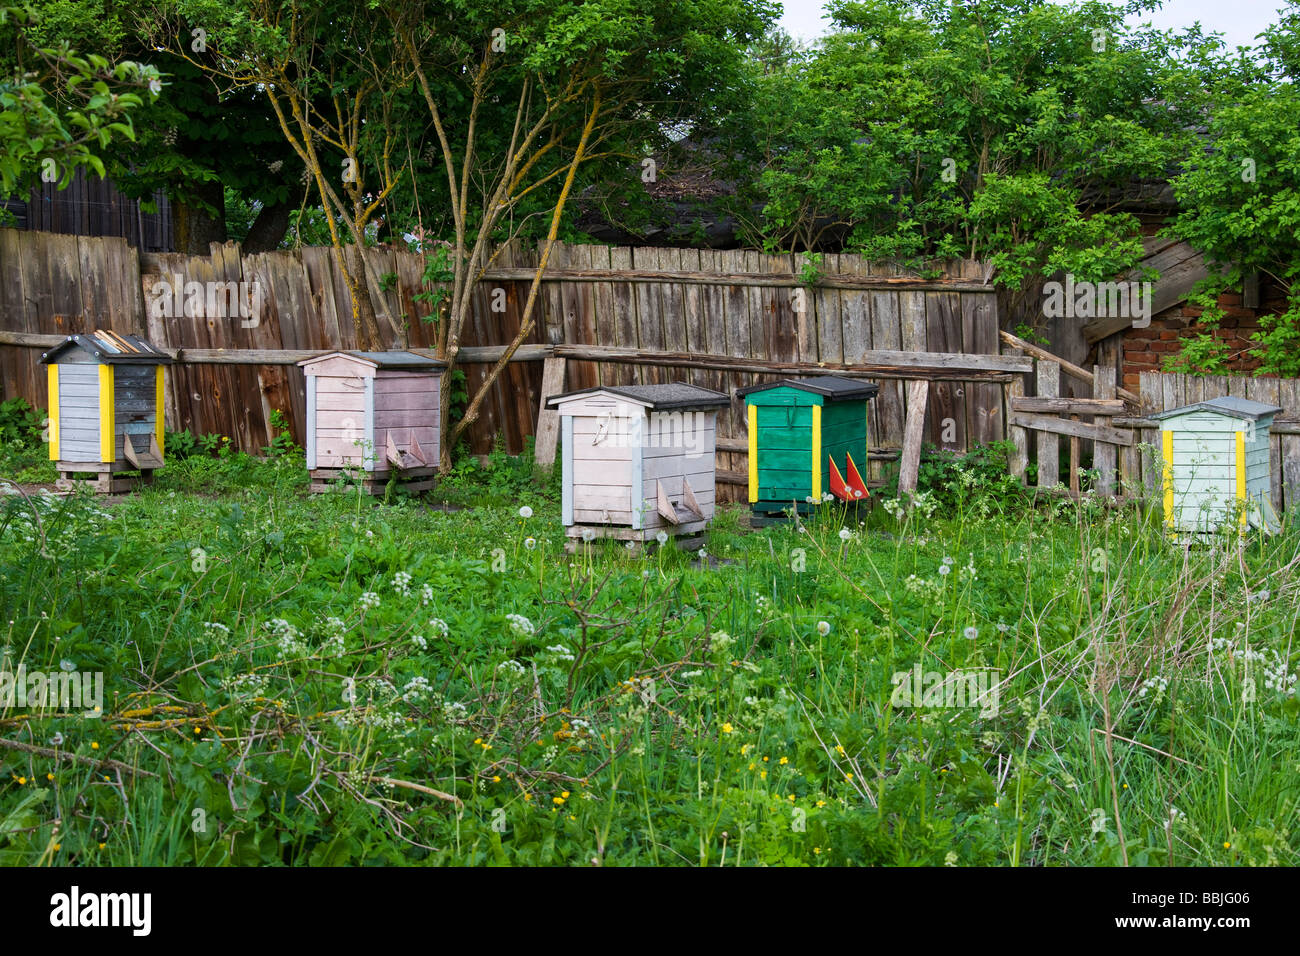 Collection of Bee-hives on area of rough ground outside of the town. - Stock Image